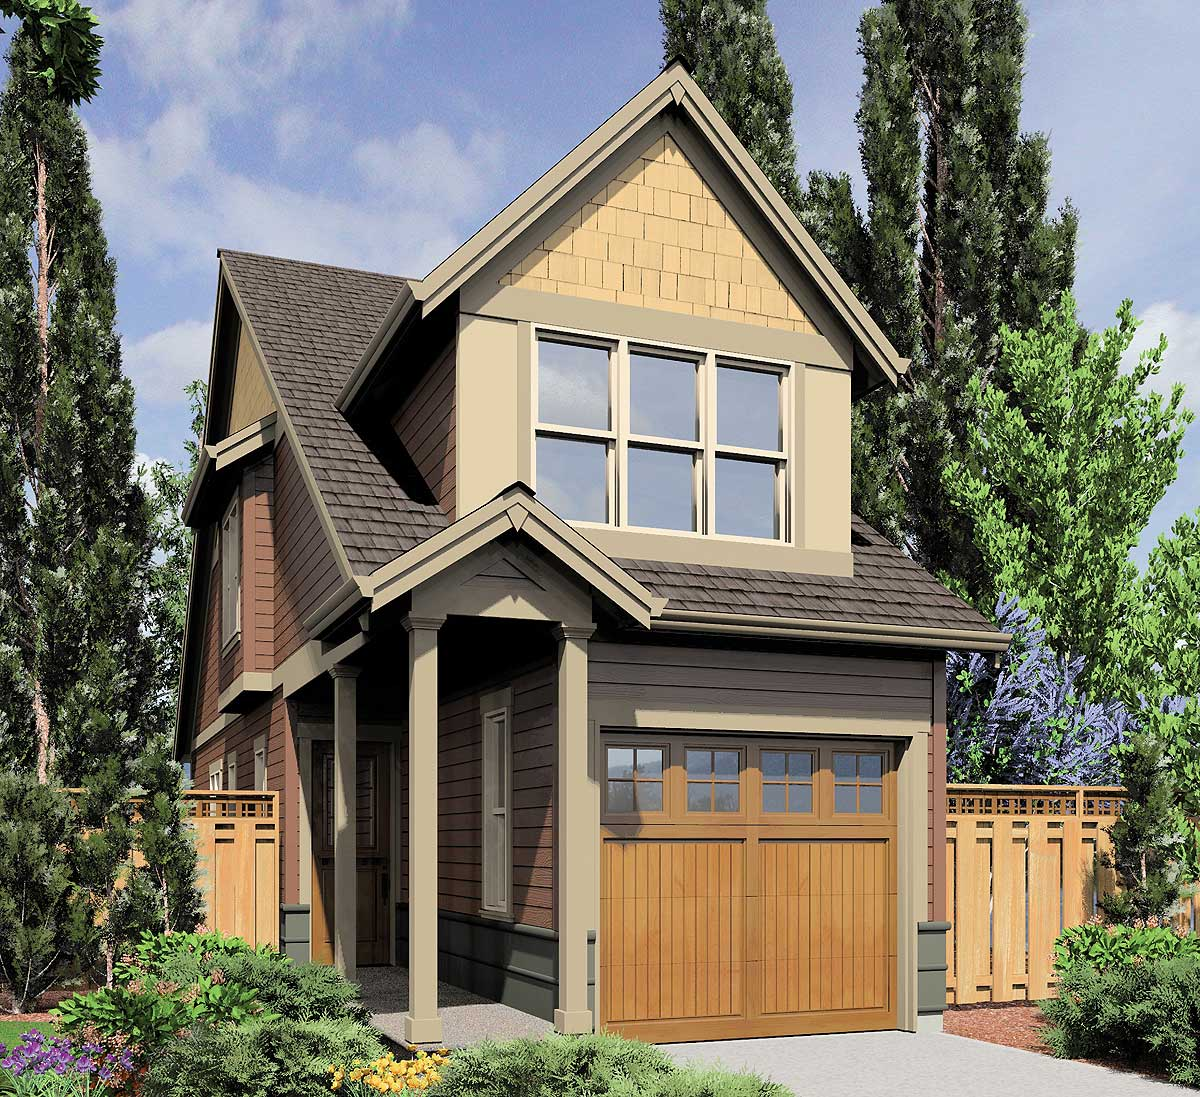 Architectural Designs Carriage House Plan 14631rk Gives: Sliver Of A Home Plan - 69574AM